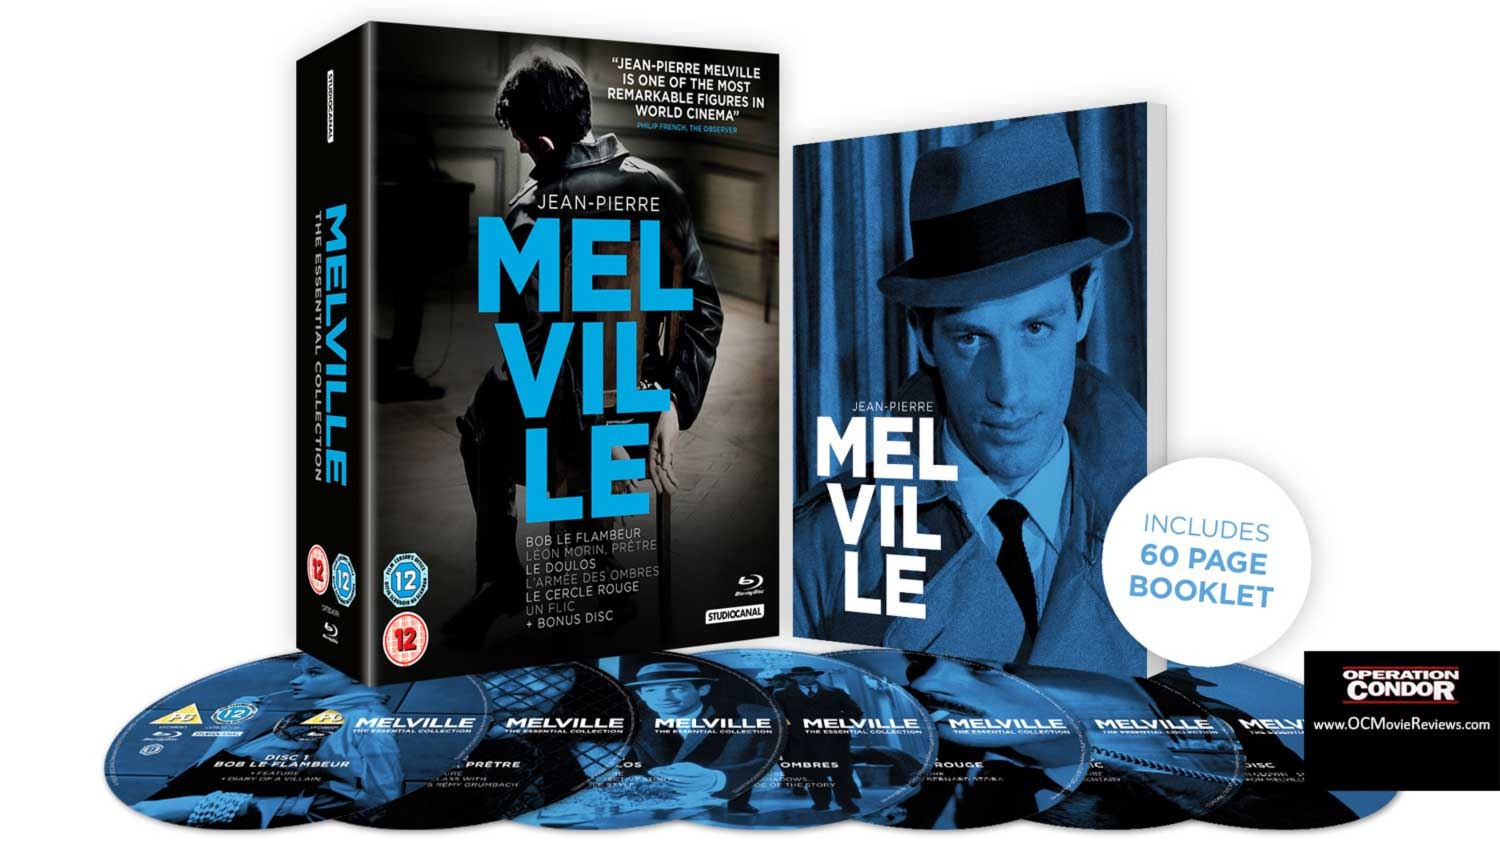 Army Of Shadows (L'armée Des Ombres) Review – Part IV Of Our Jean-Pierre Melville Collection - OC Movie Reviews - Movie Reviews, Movie News, Documentary Reviews, Short Films, Short Film Reviews, Trailers, Movie Trailers, Interviews, film reviews, film news, hollywood, indie films, documentaries